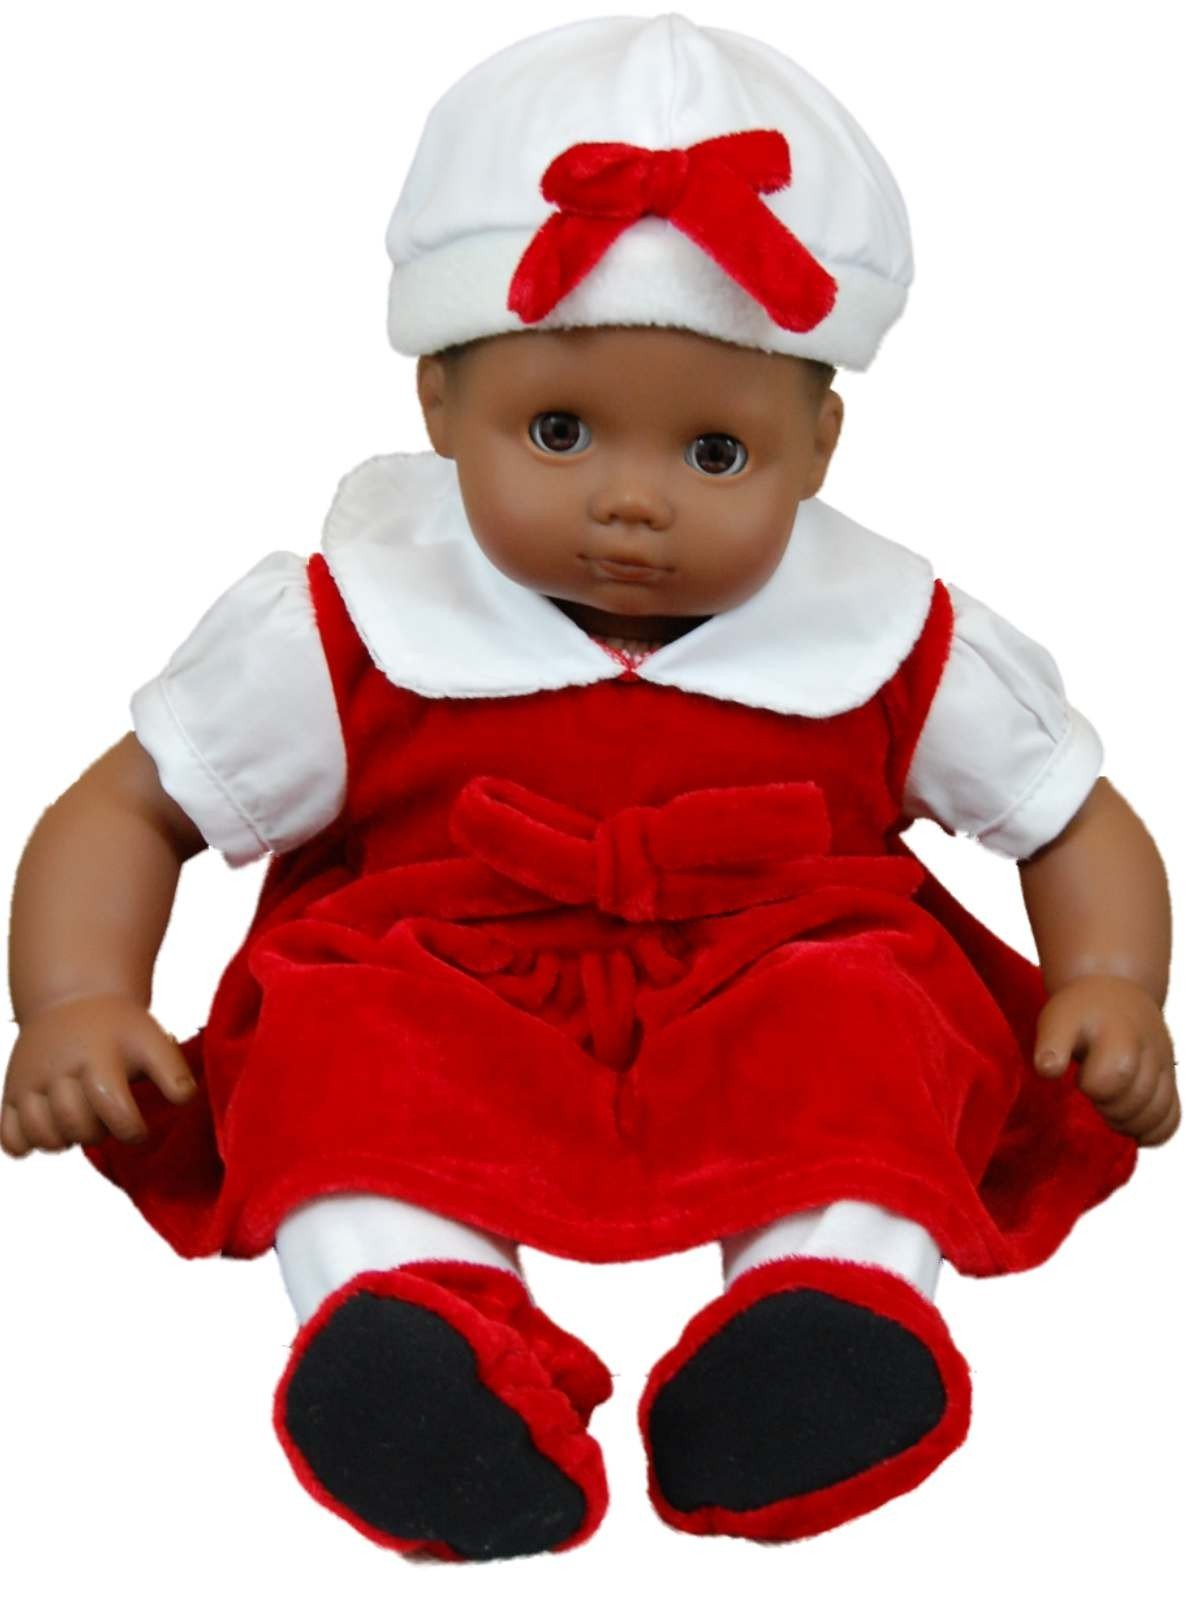 Red Velvet Outfit Fits 15 Quot American Girl 168 Bitty Baby Doll